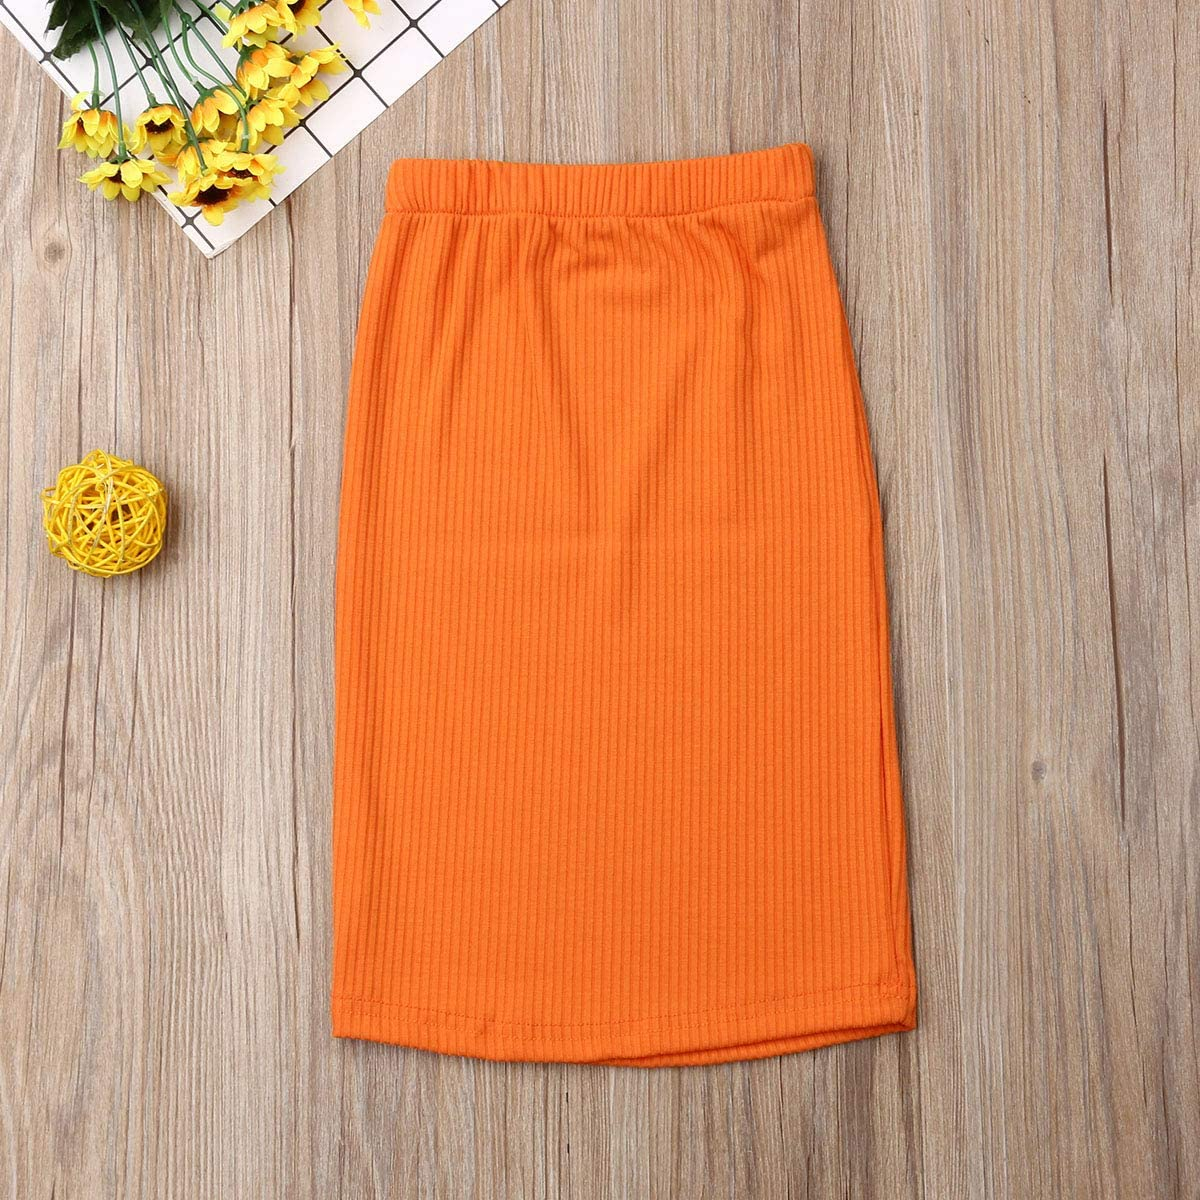 WUPPRT Toddler Baby Girl Knit Hip Skirt Solid High Waisted Pencil Straight Skirt Clothes